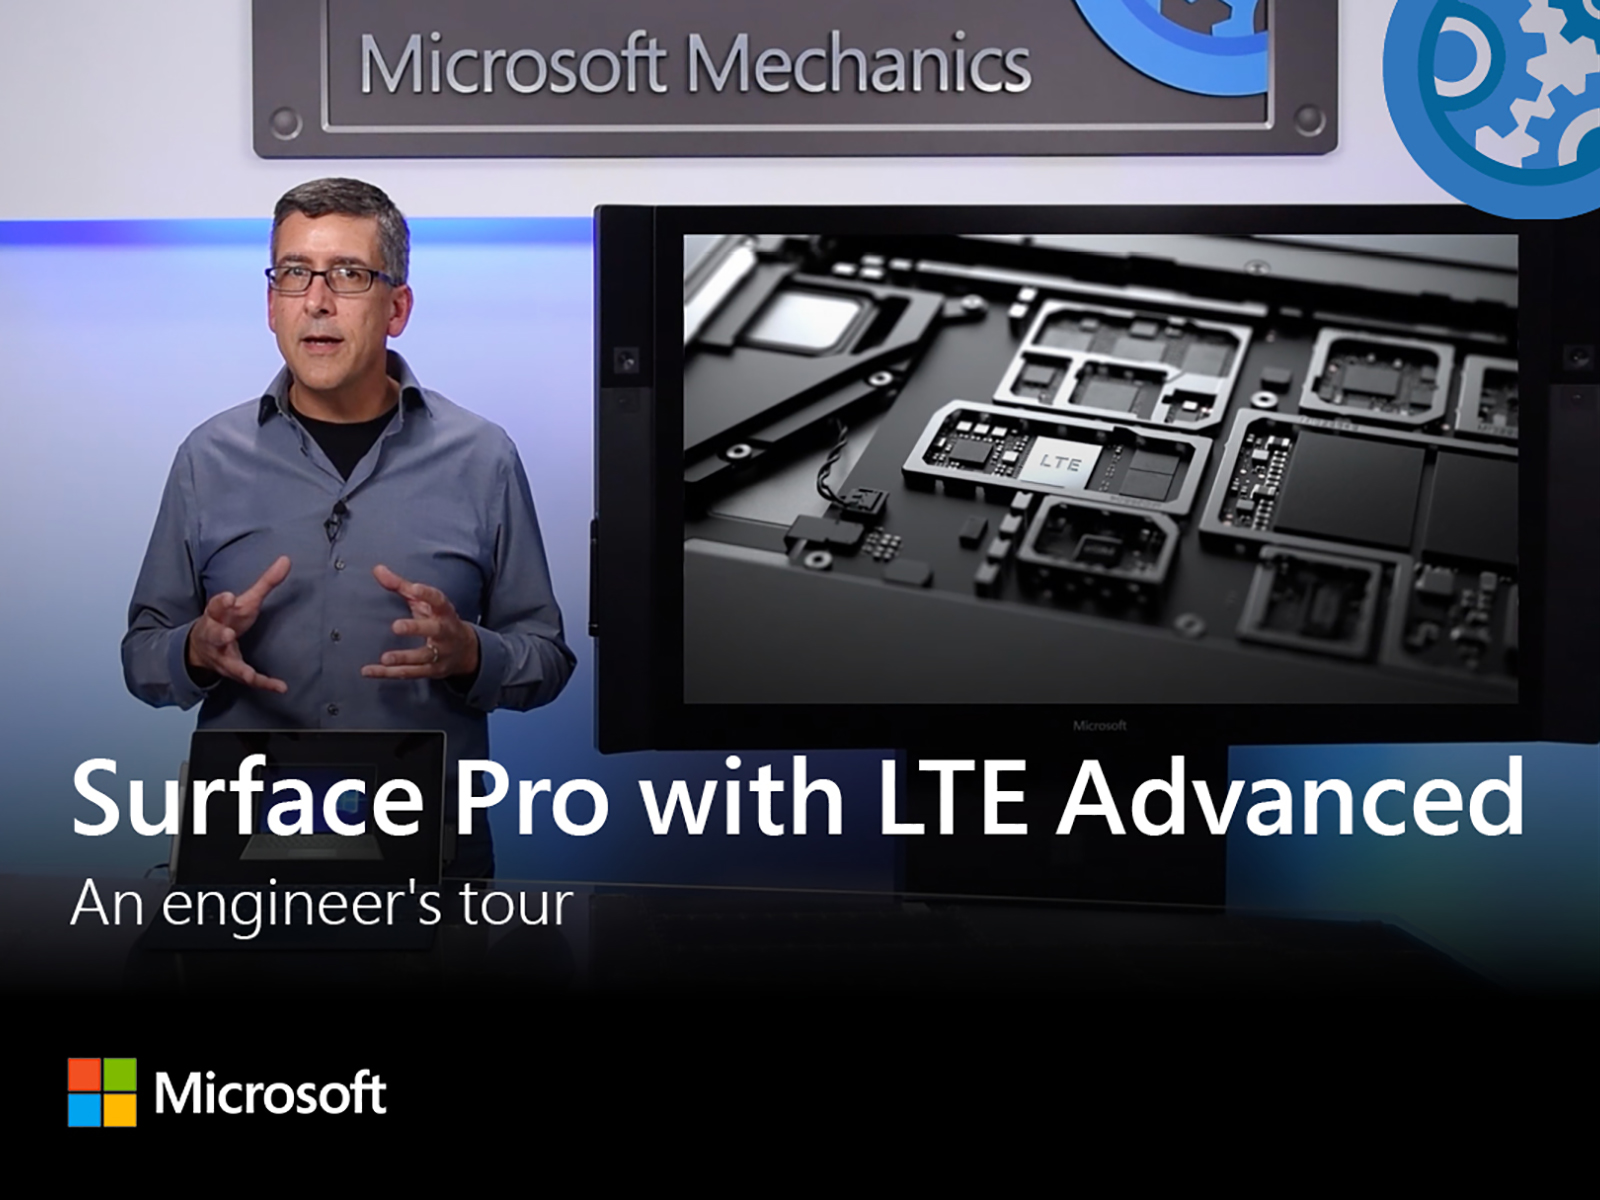 Artwork for Surface Pro with LTE Advanced